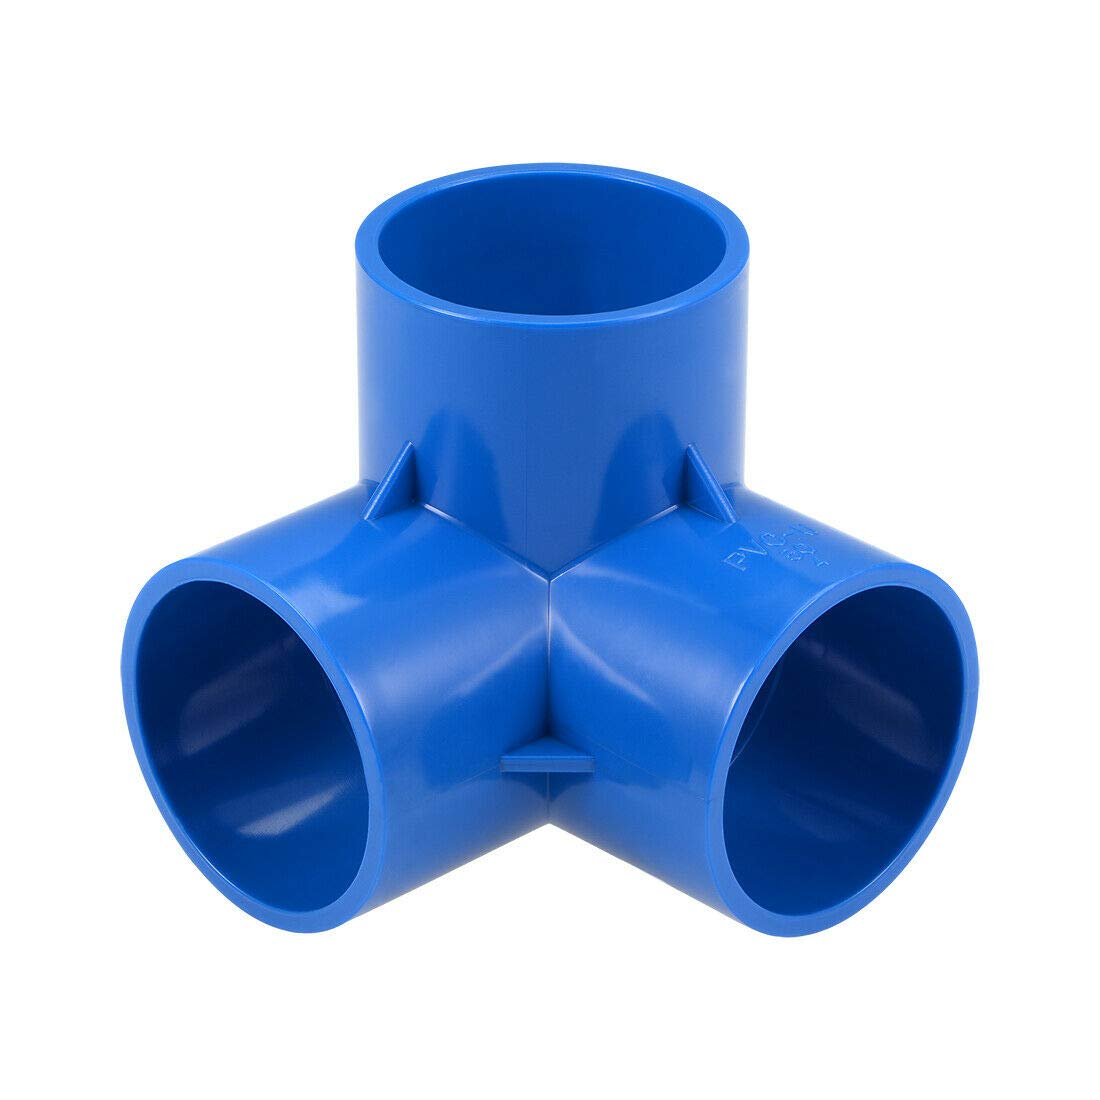 Pipe Fittings 3-Way Elbow PVC Fitting Socket 50mm Tee F Corner Sales results No. Same day shipping 1